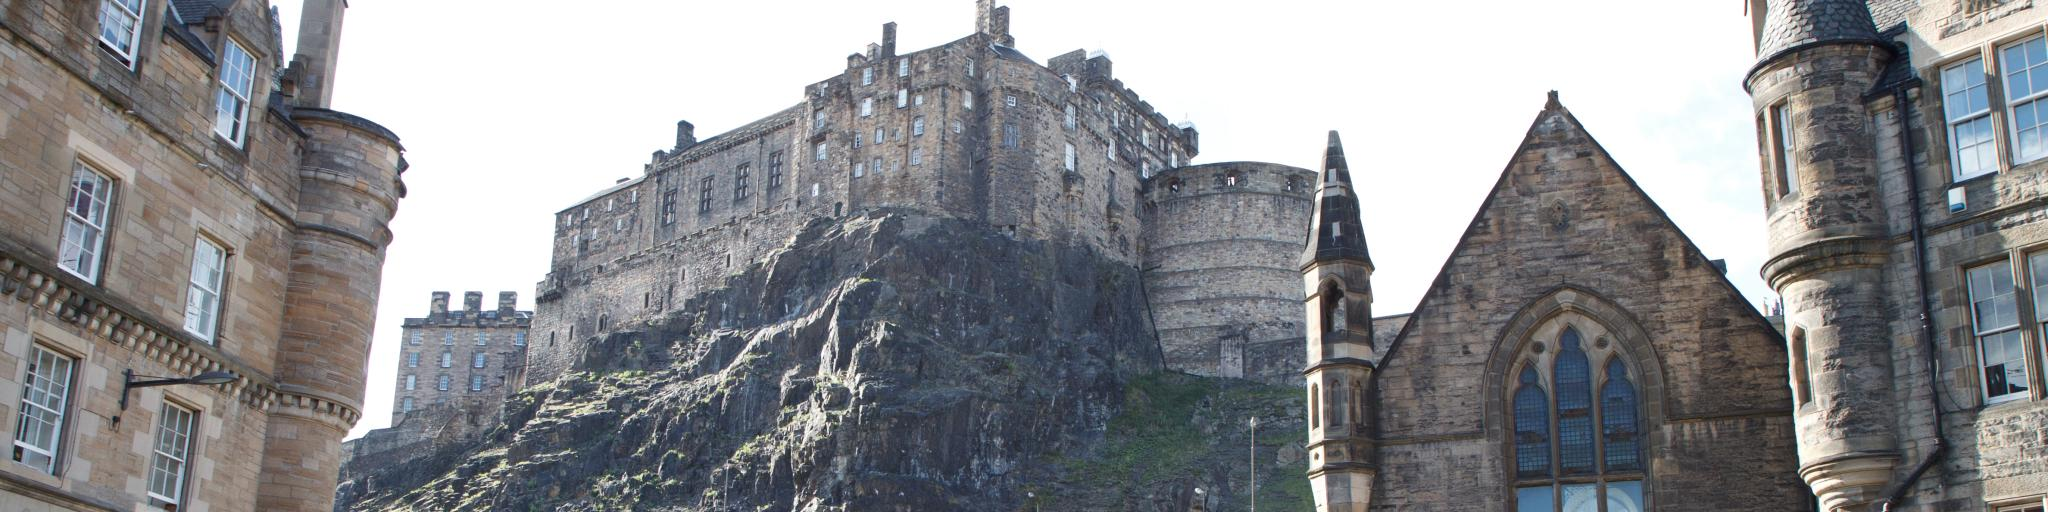 The view of Edinburgh Castle from Grassmarket is one of the most iconic in the city